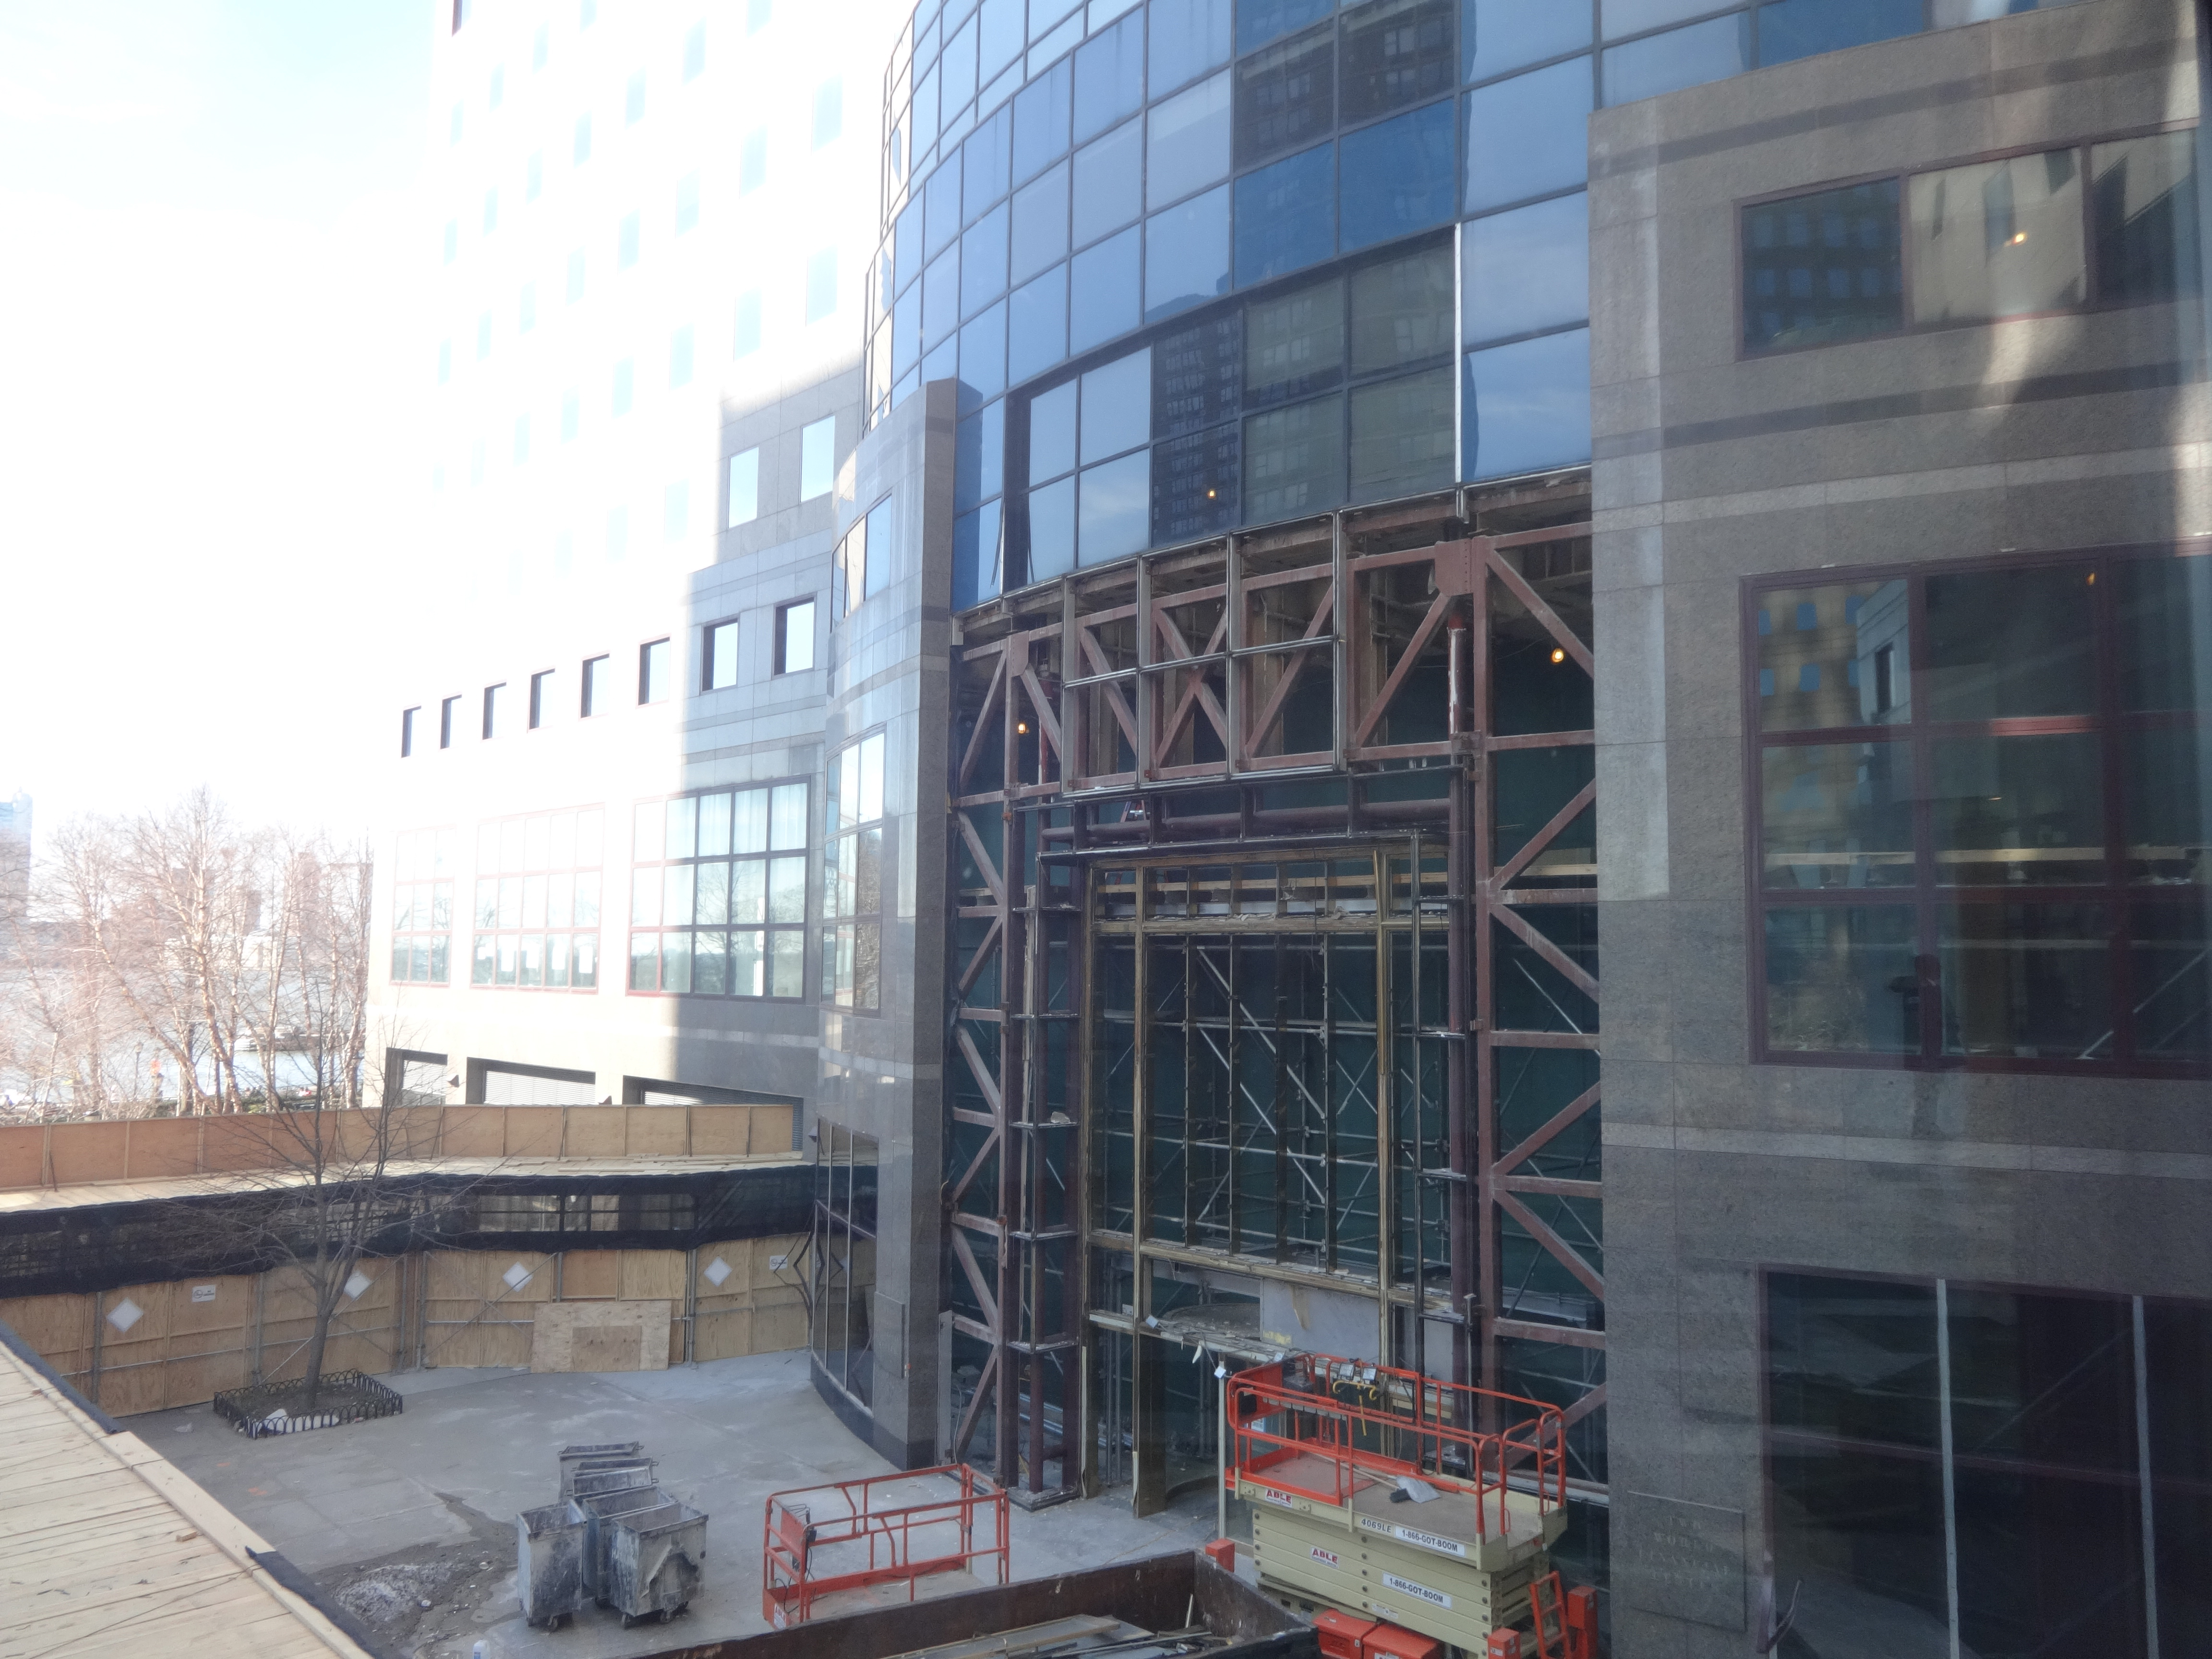 Brookfield Place south entrance 3-9-2014